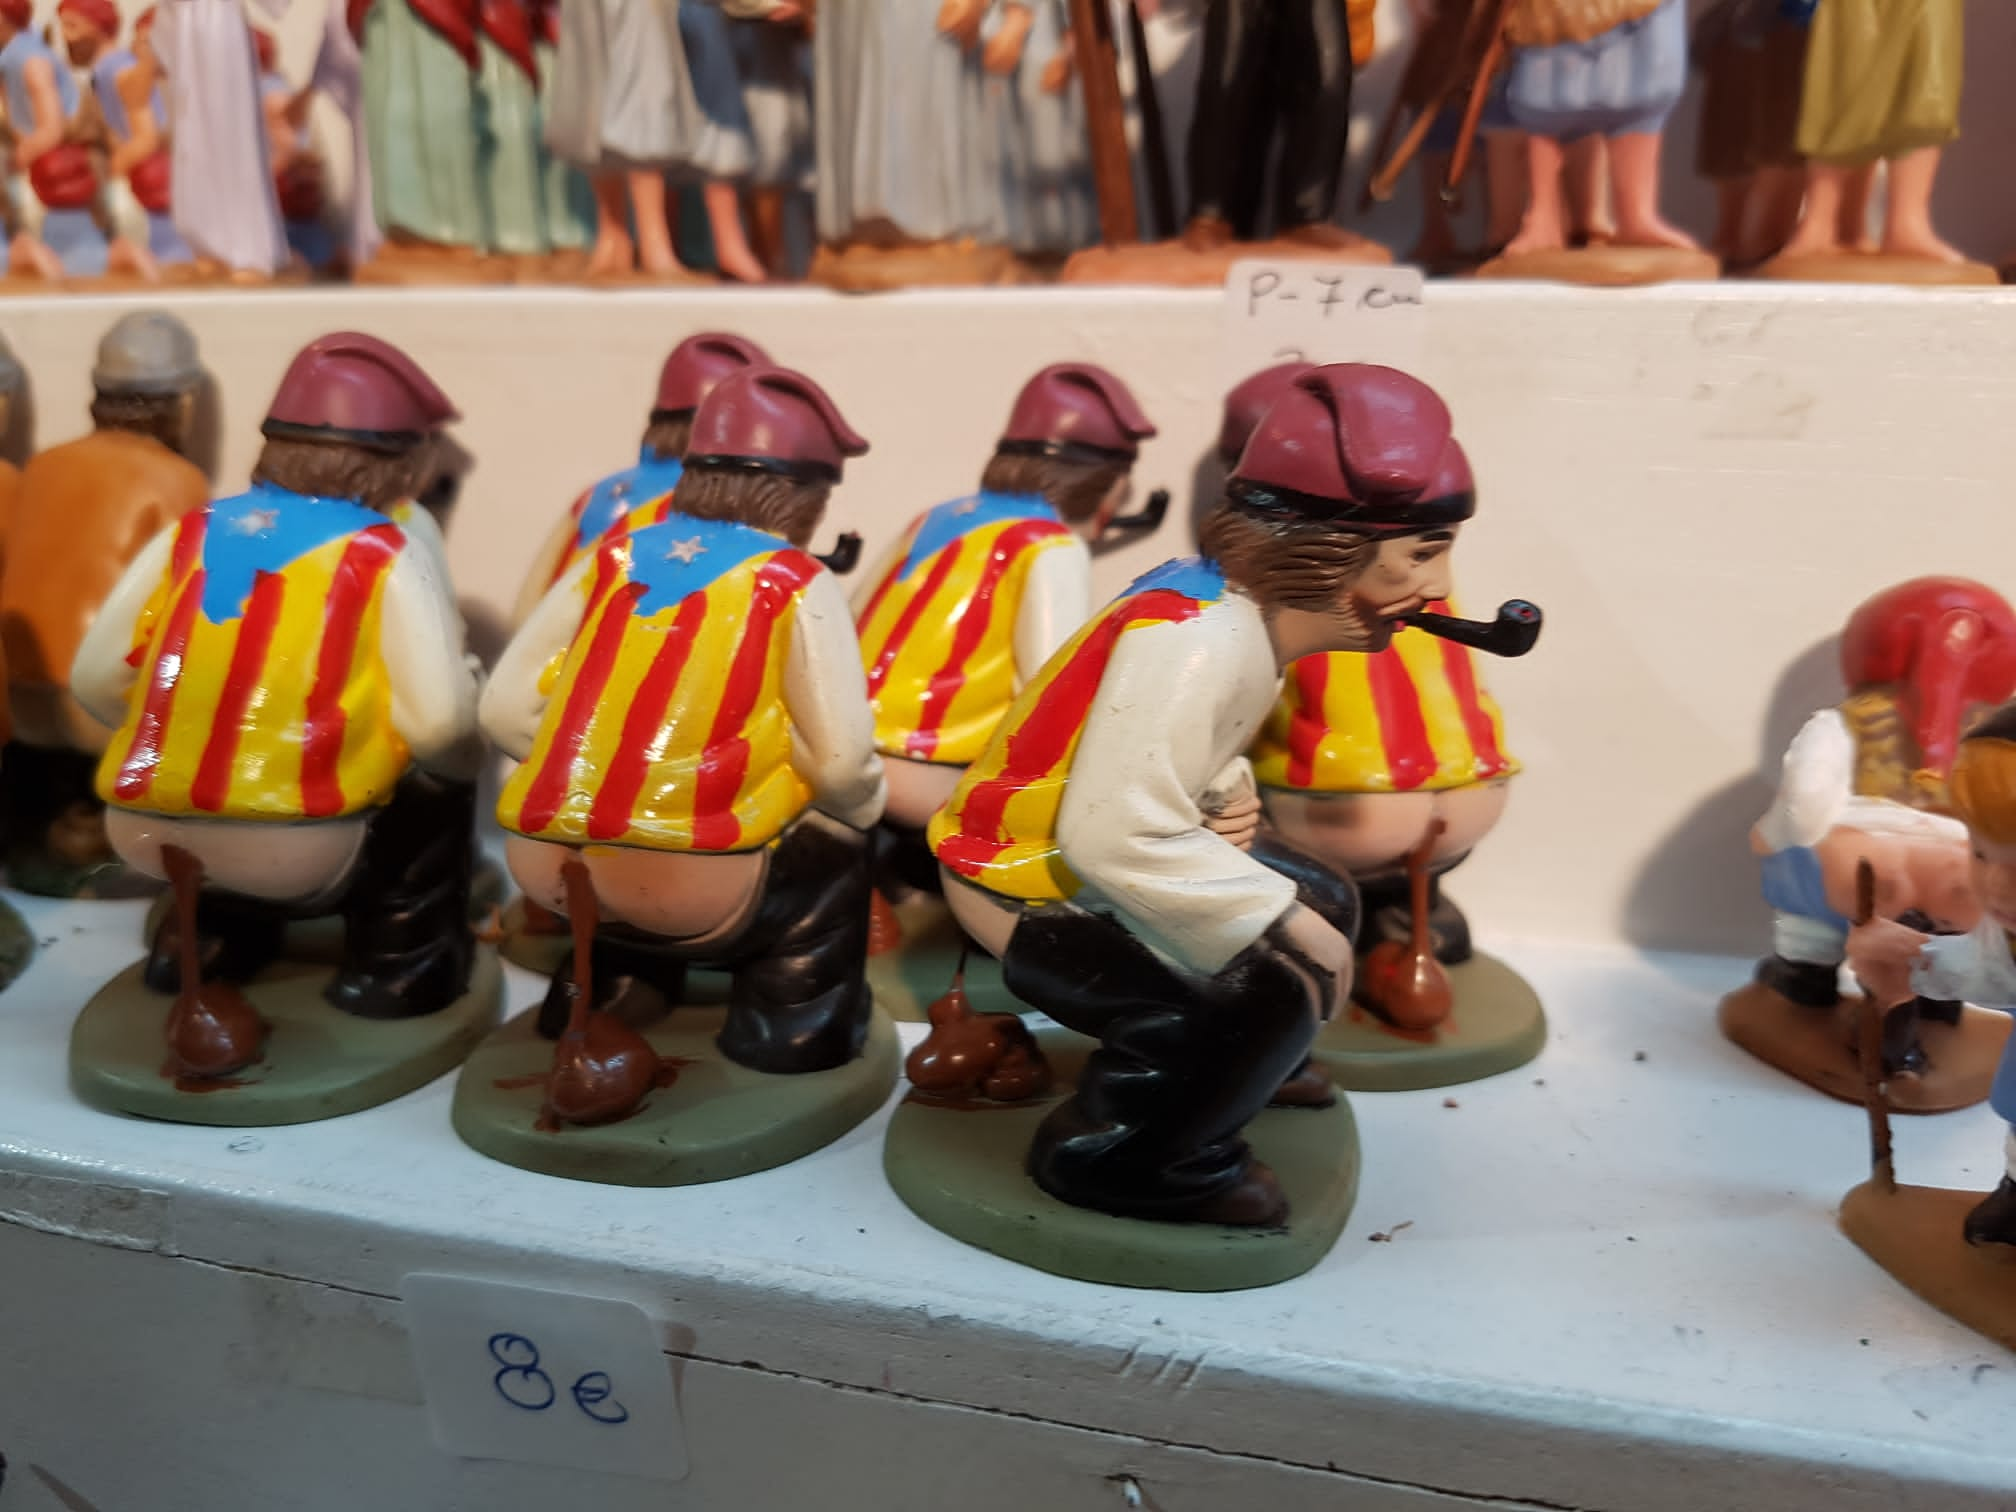 Caganers at Barcelona's Christmas Market. One of the odd Catalan Christmas traditions